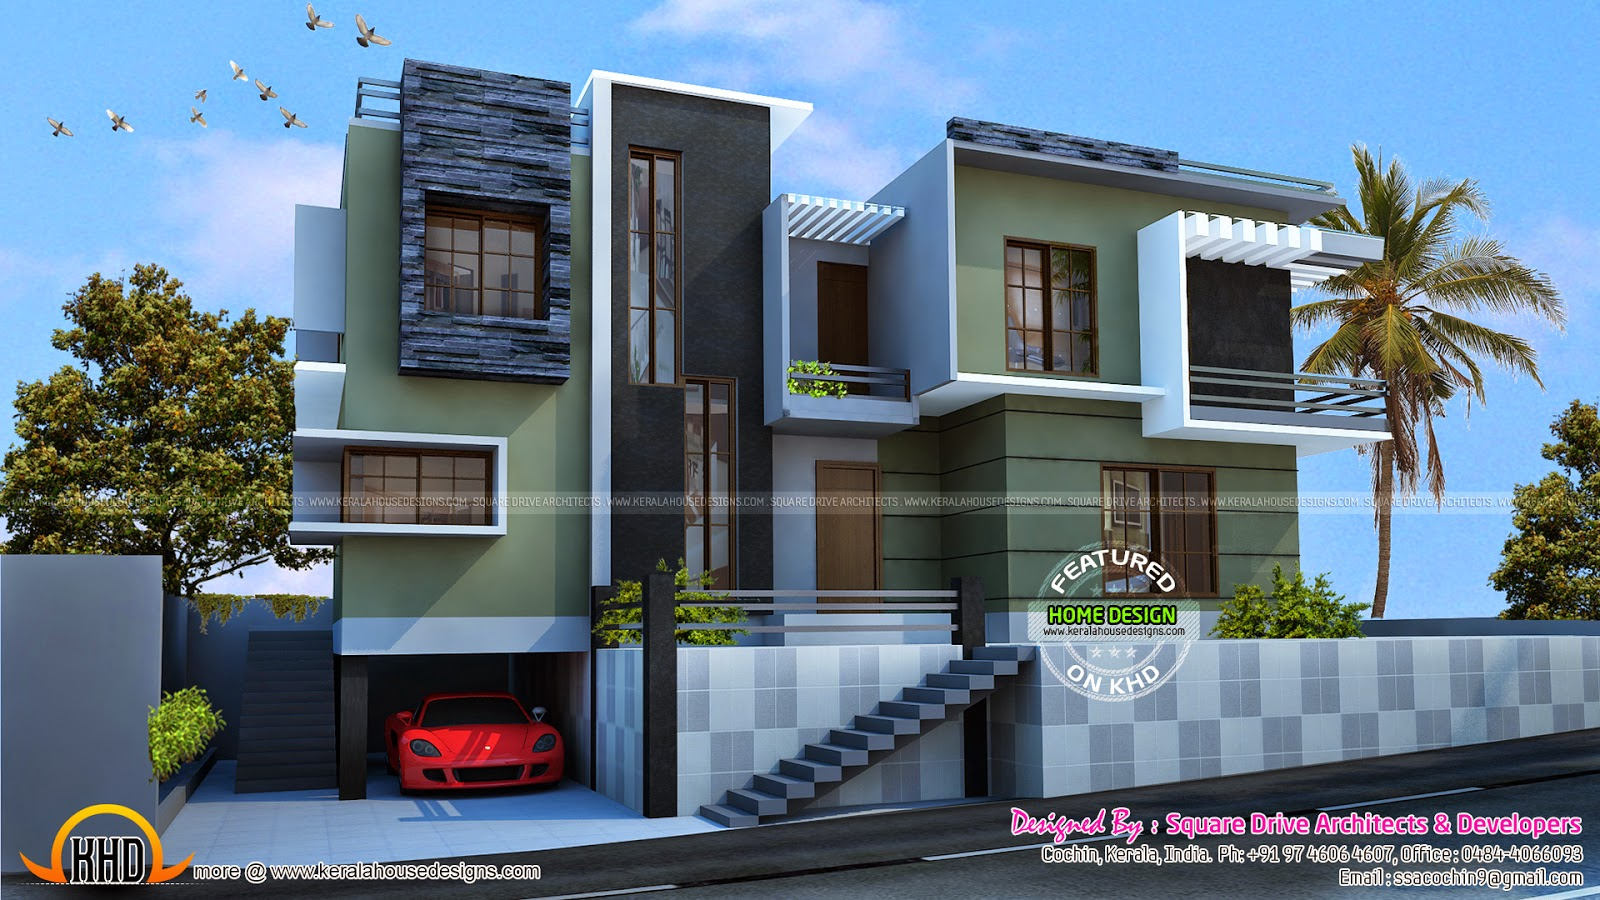 Modern duplex house kerala home design and floor plans - New house design ...